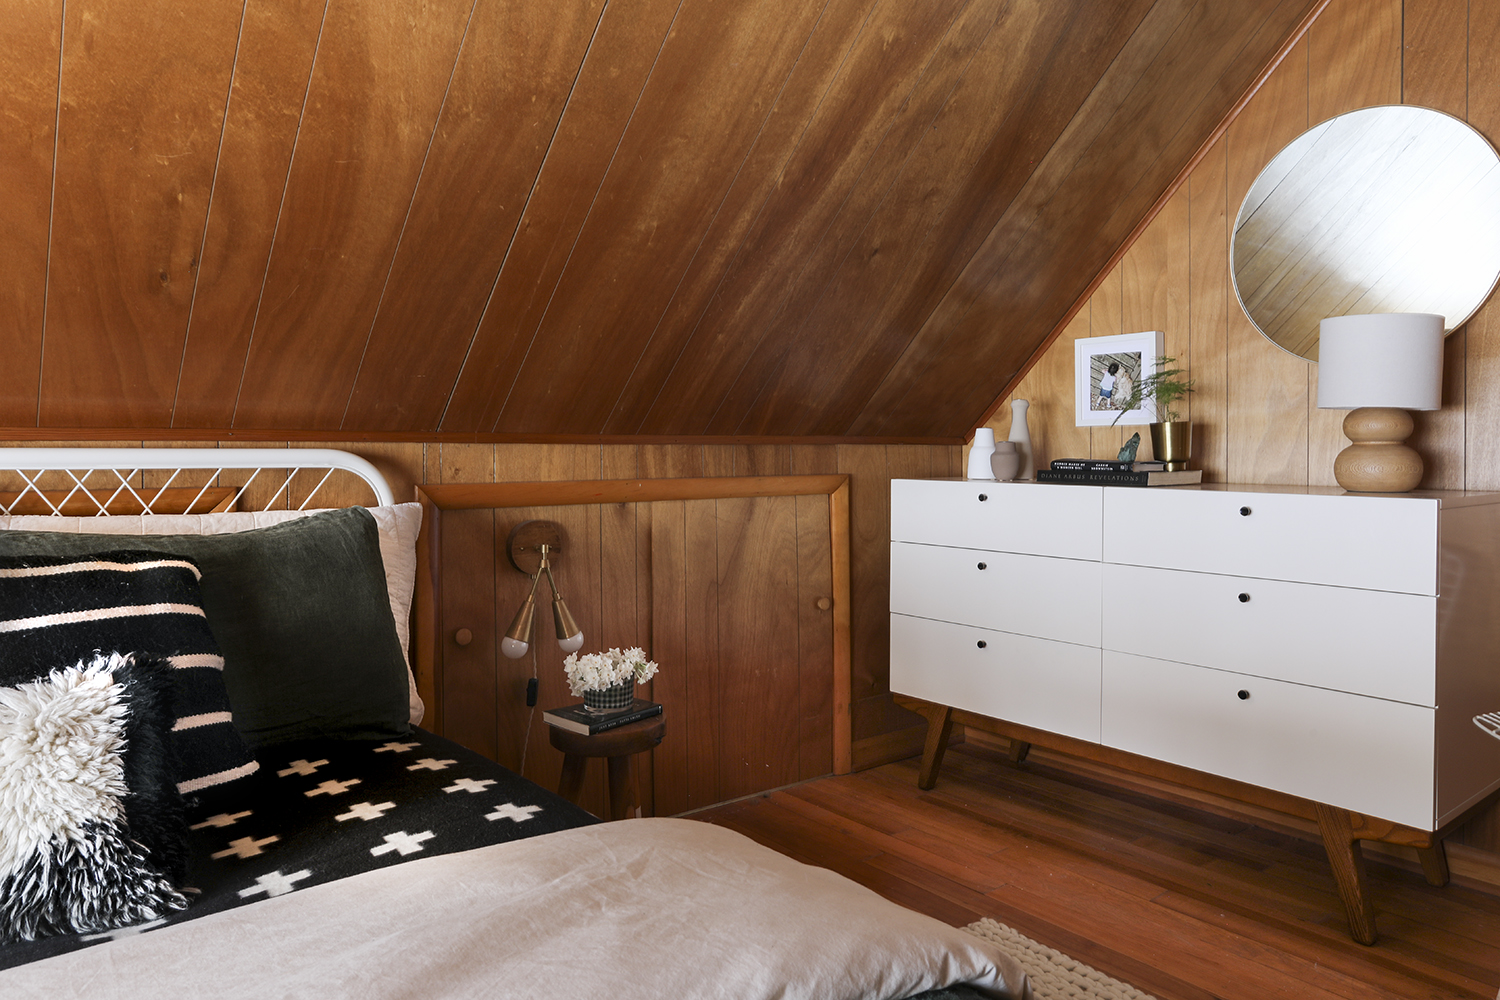 Cabin Master Bedroom Reveal | Deuce Cities Henhouse